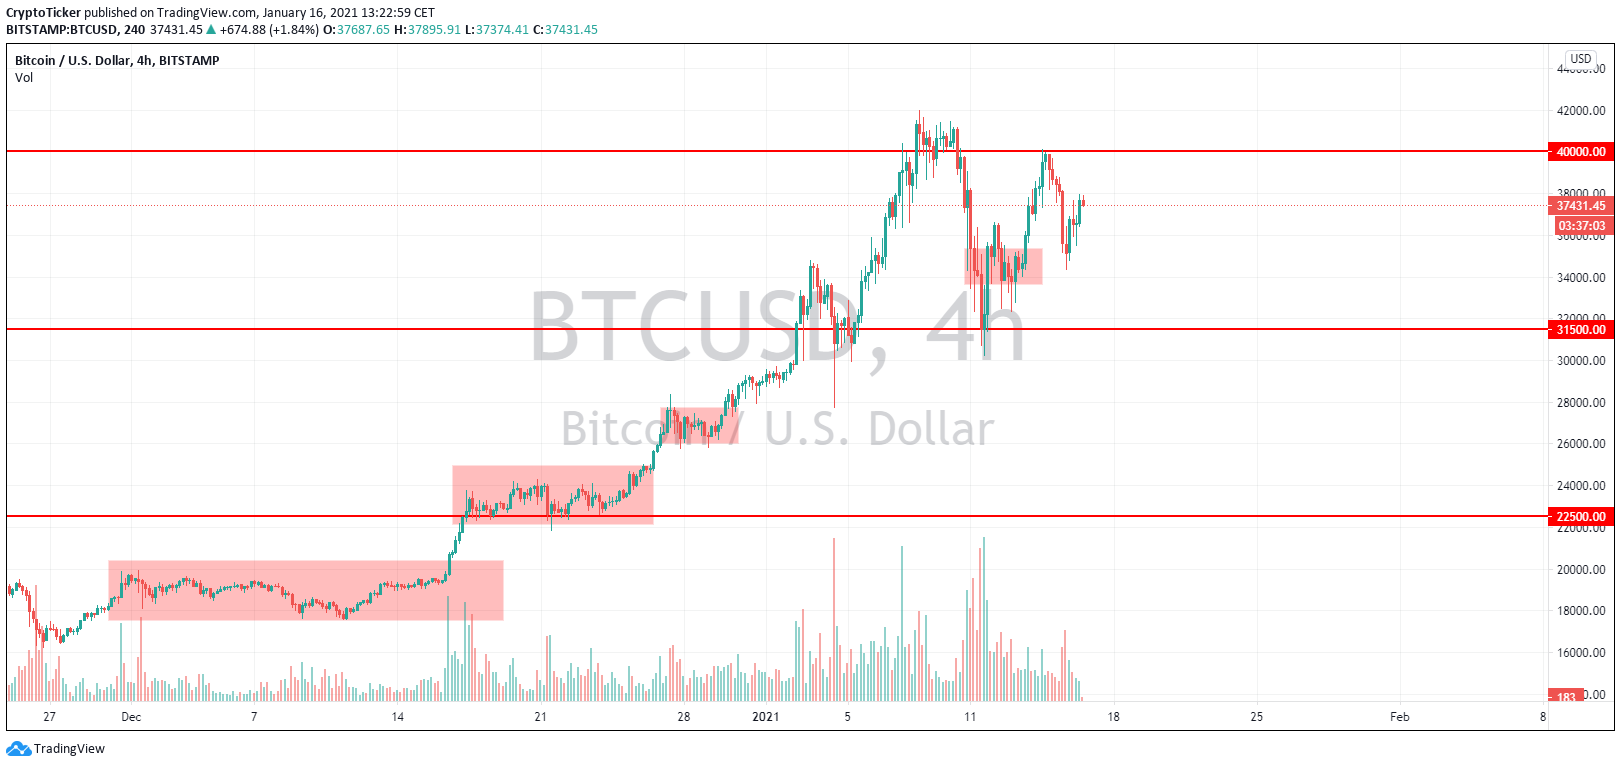 BTC/USD 4-hour chart showing previous consolidations followed by increased prices